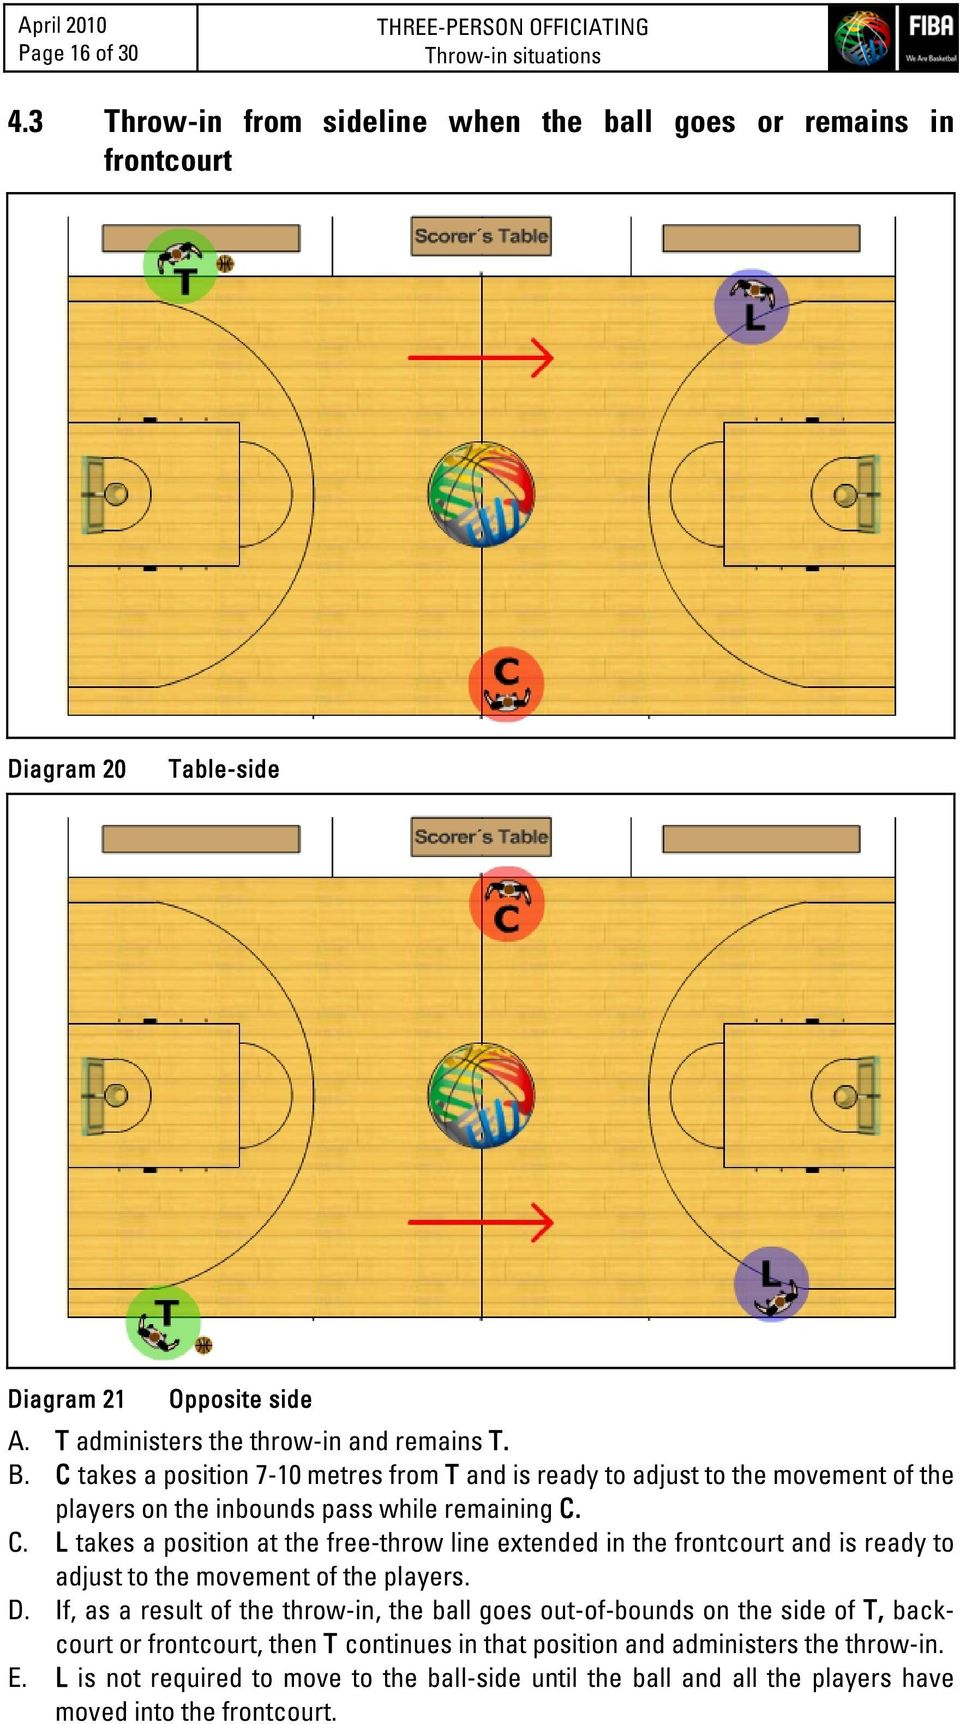 D. If, as a result of the throw-in, the ball goes out-of-bounds on the side of T, backcourt or frontcourt, then T continues in that position and administers the throw-in. E.